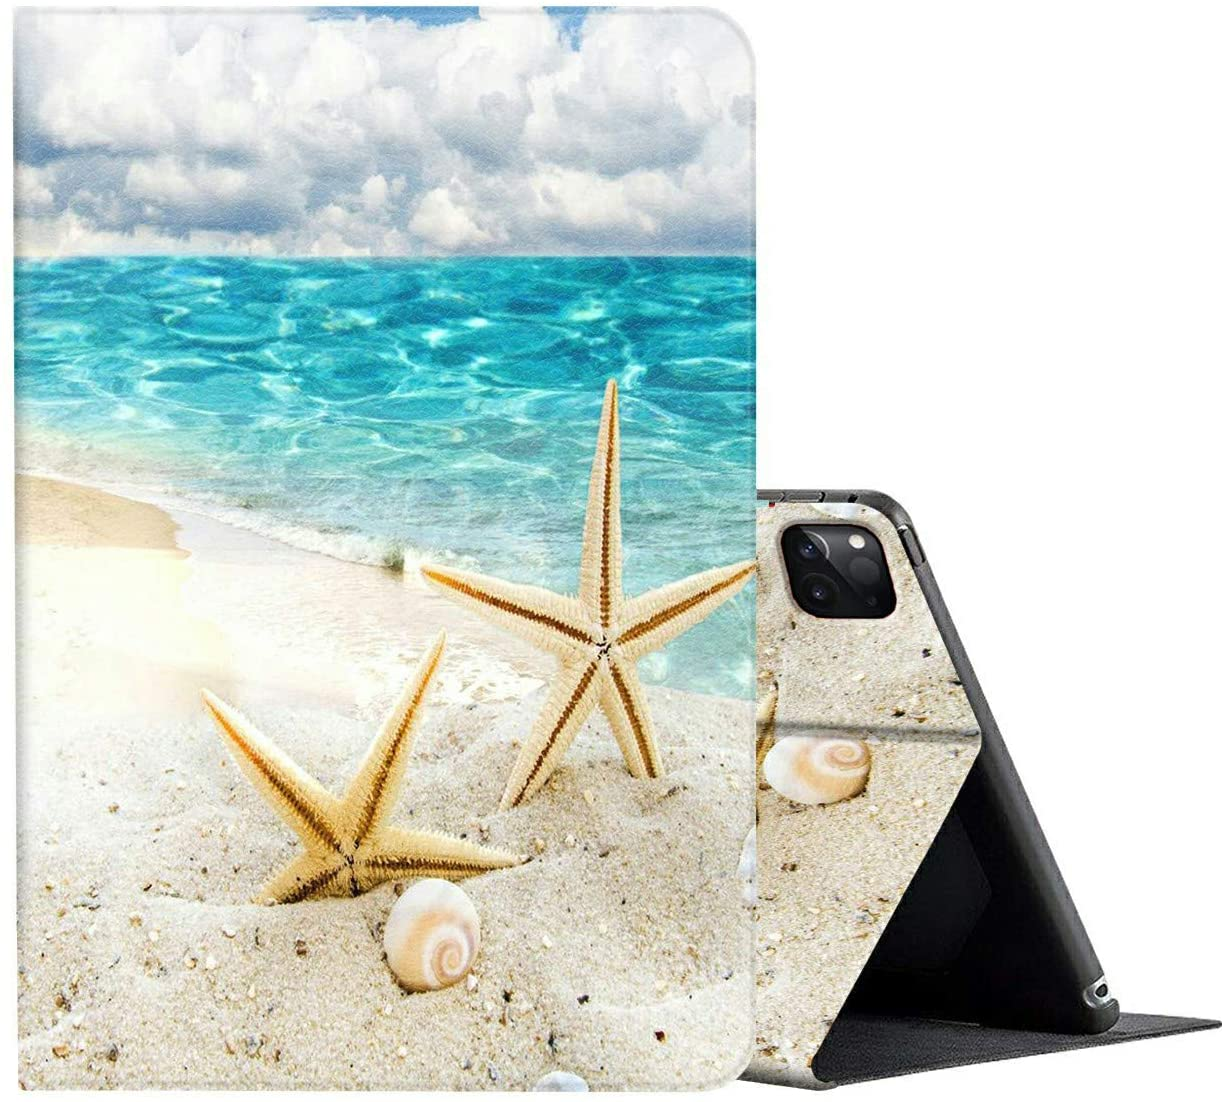 iPad Pro 12.9 Case 2020,AMOOK Adjustable Folio Smart Cover Stand Shockproof TPU Case with Auto Sleep/Wake & Anti-Slide Design for Apple iPad Pro 12.9 Inch 4th Generation - Blue Ocean Style Starfish